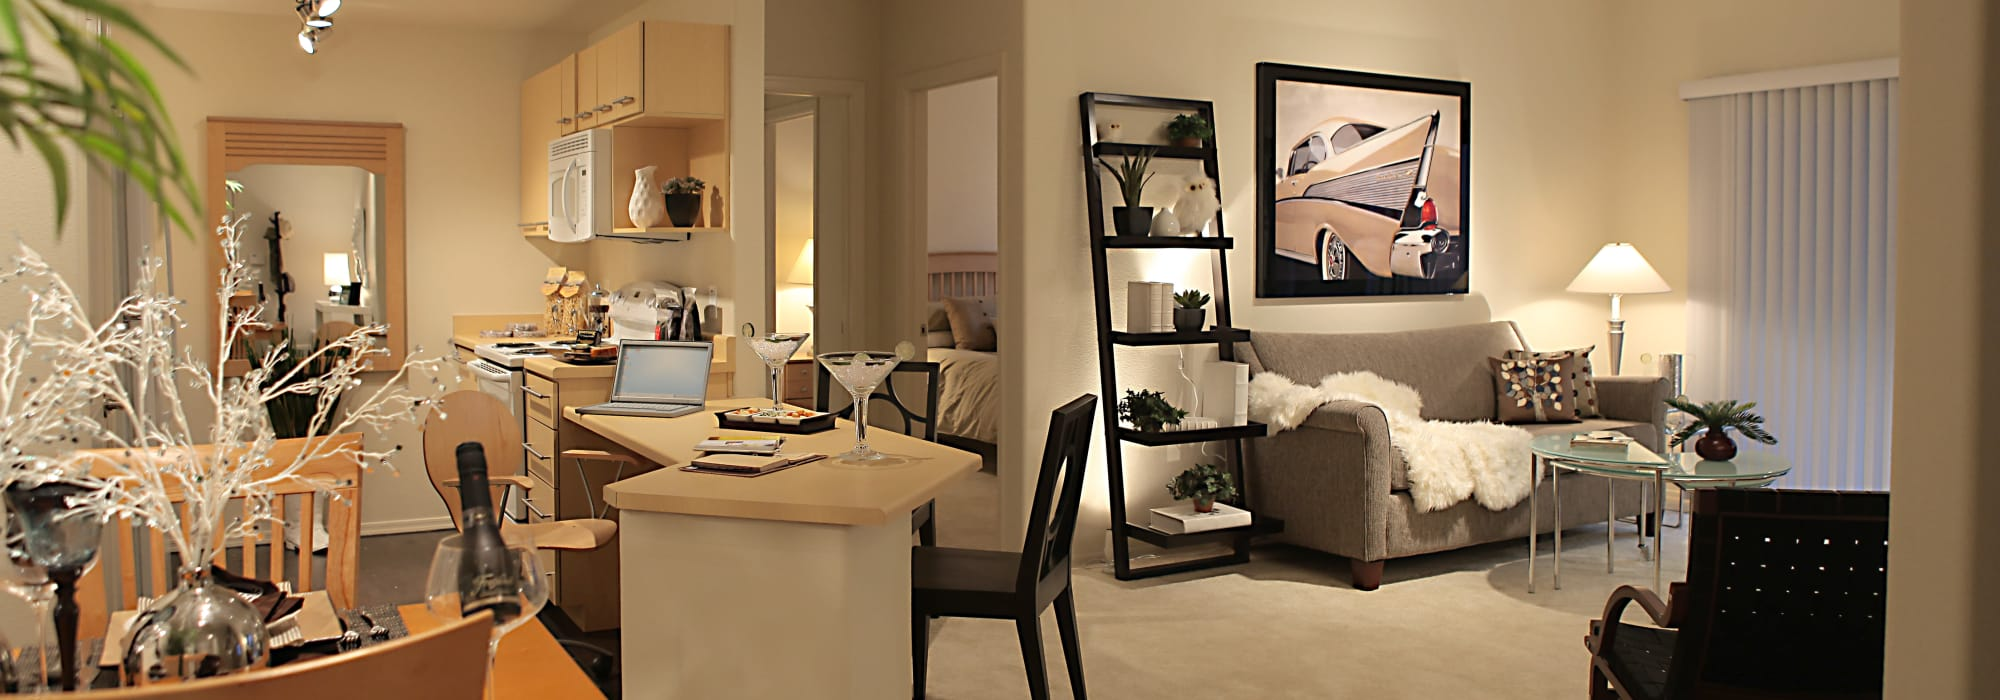 North Phoenix, AZ Apartments | Sage Luxury Apartment Homes